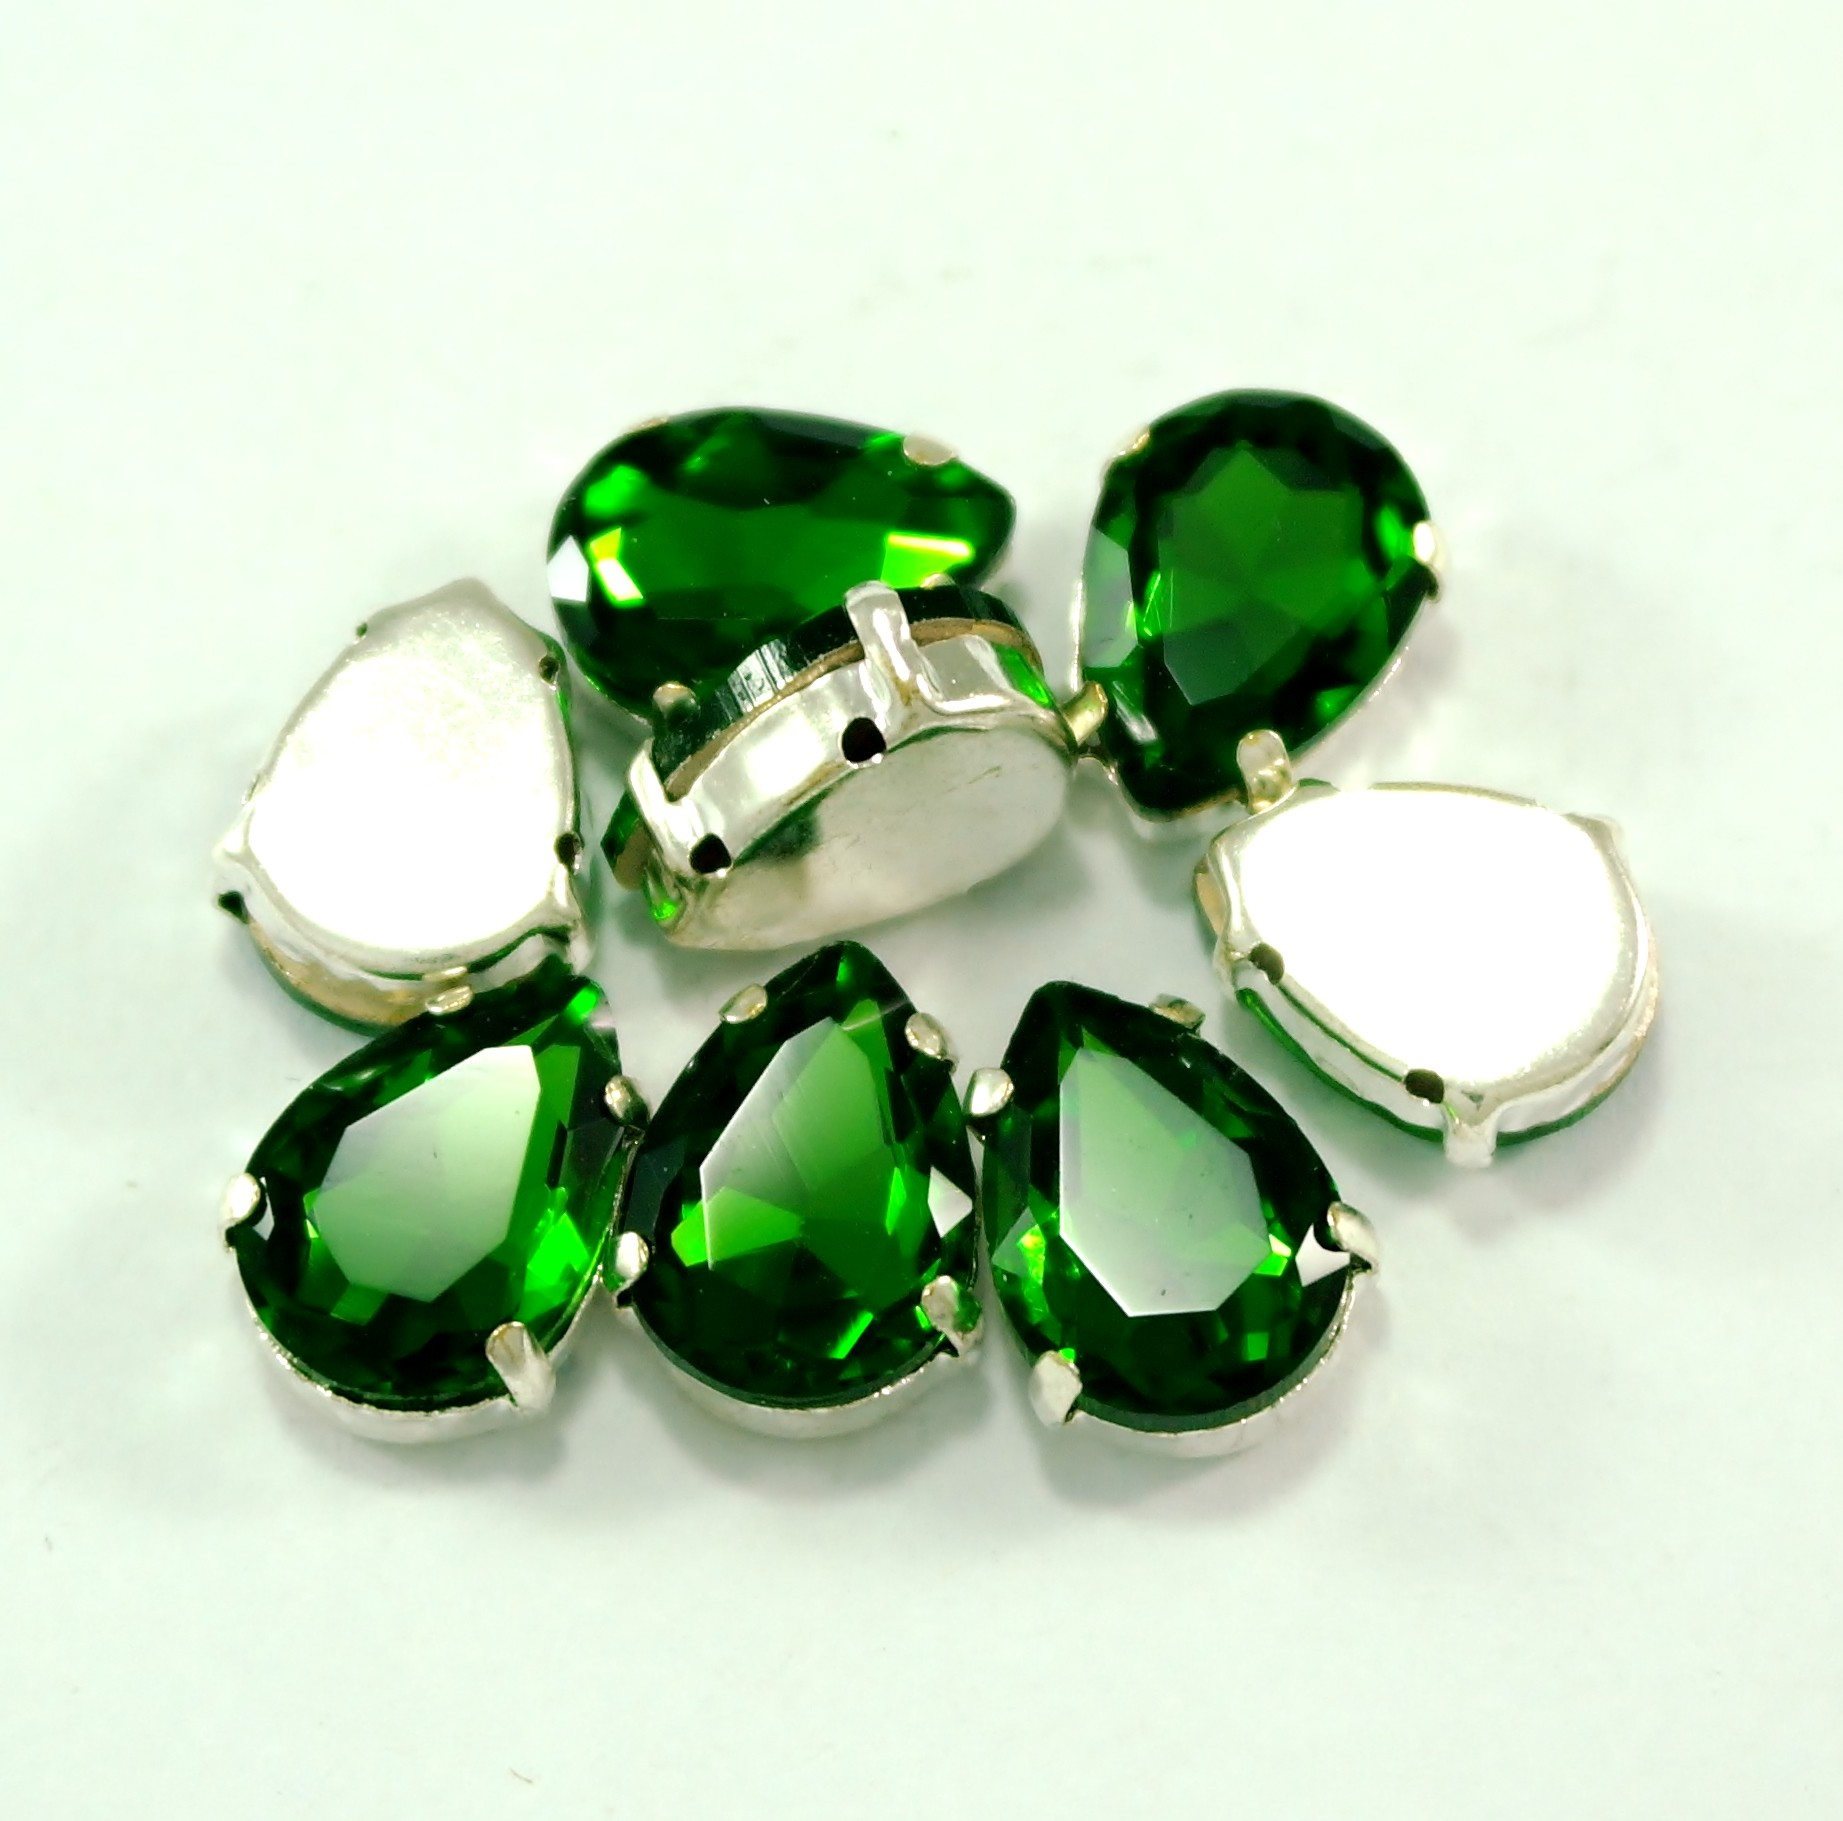 GLASS BEADS - GREEN TEAR DROP (T7)